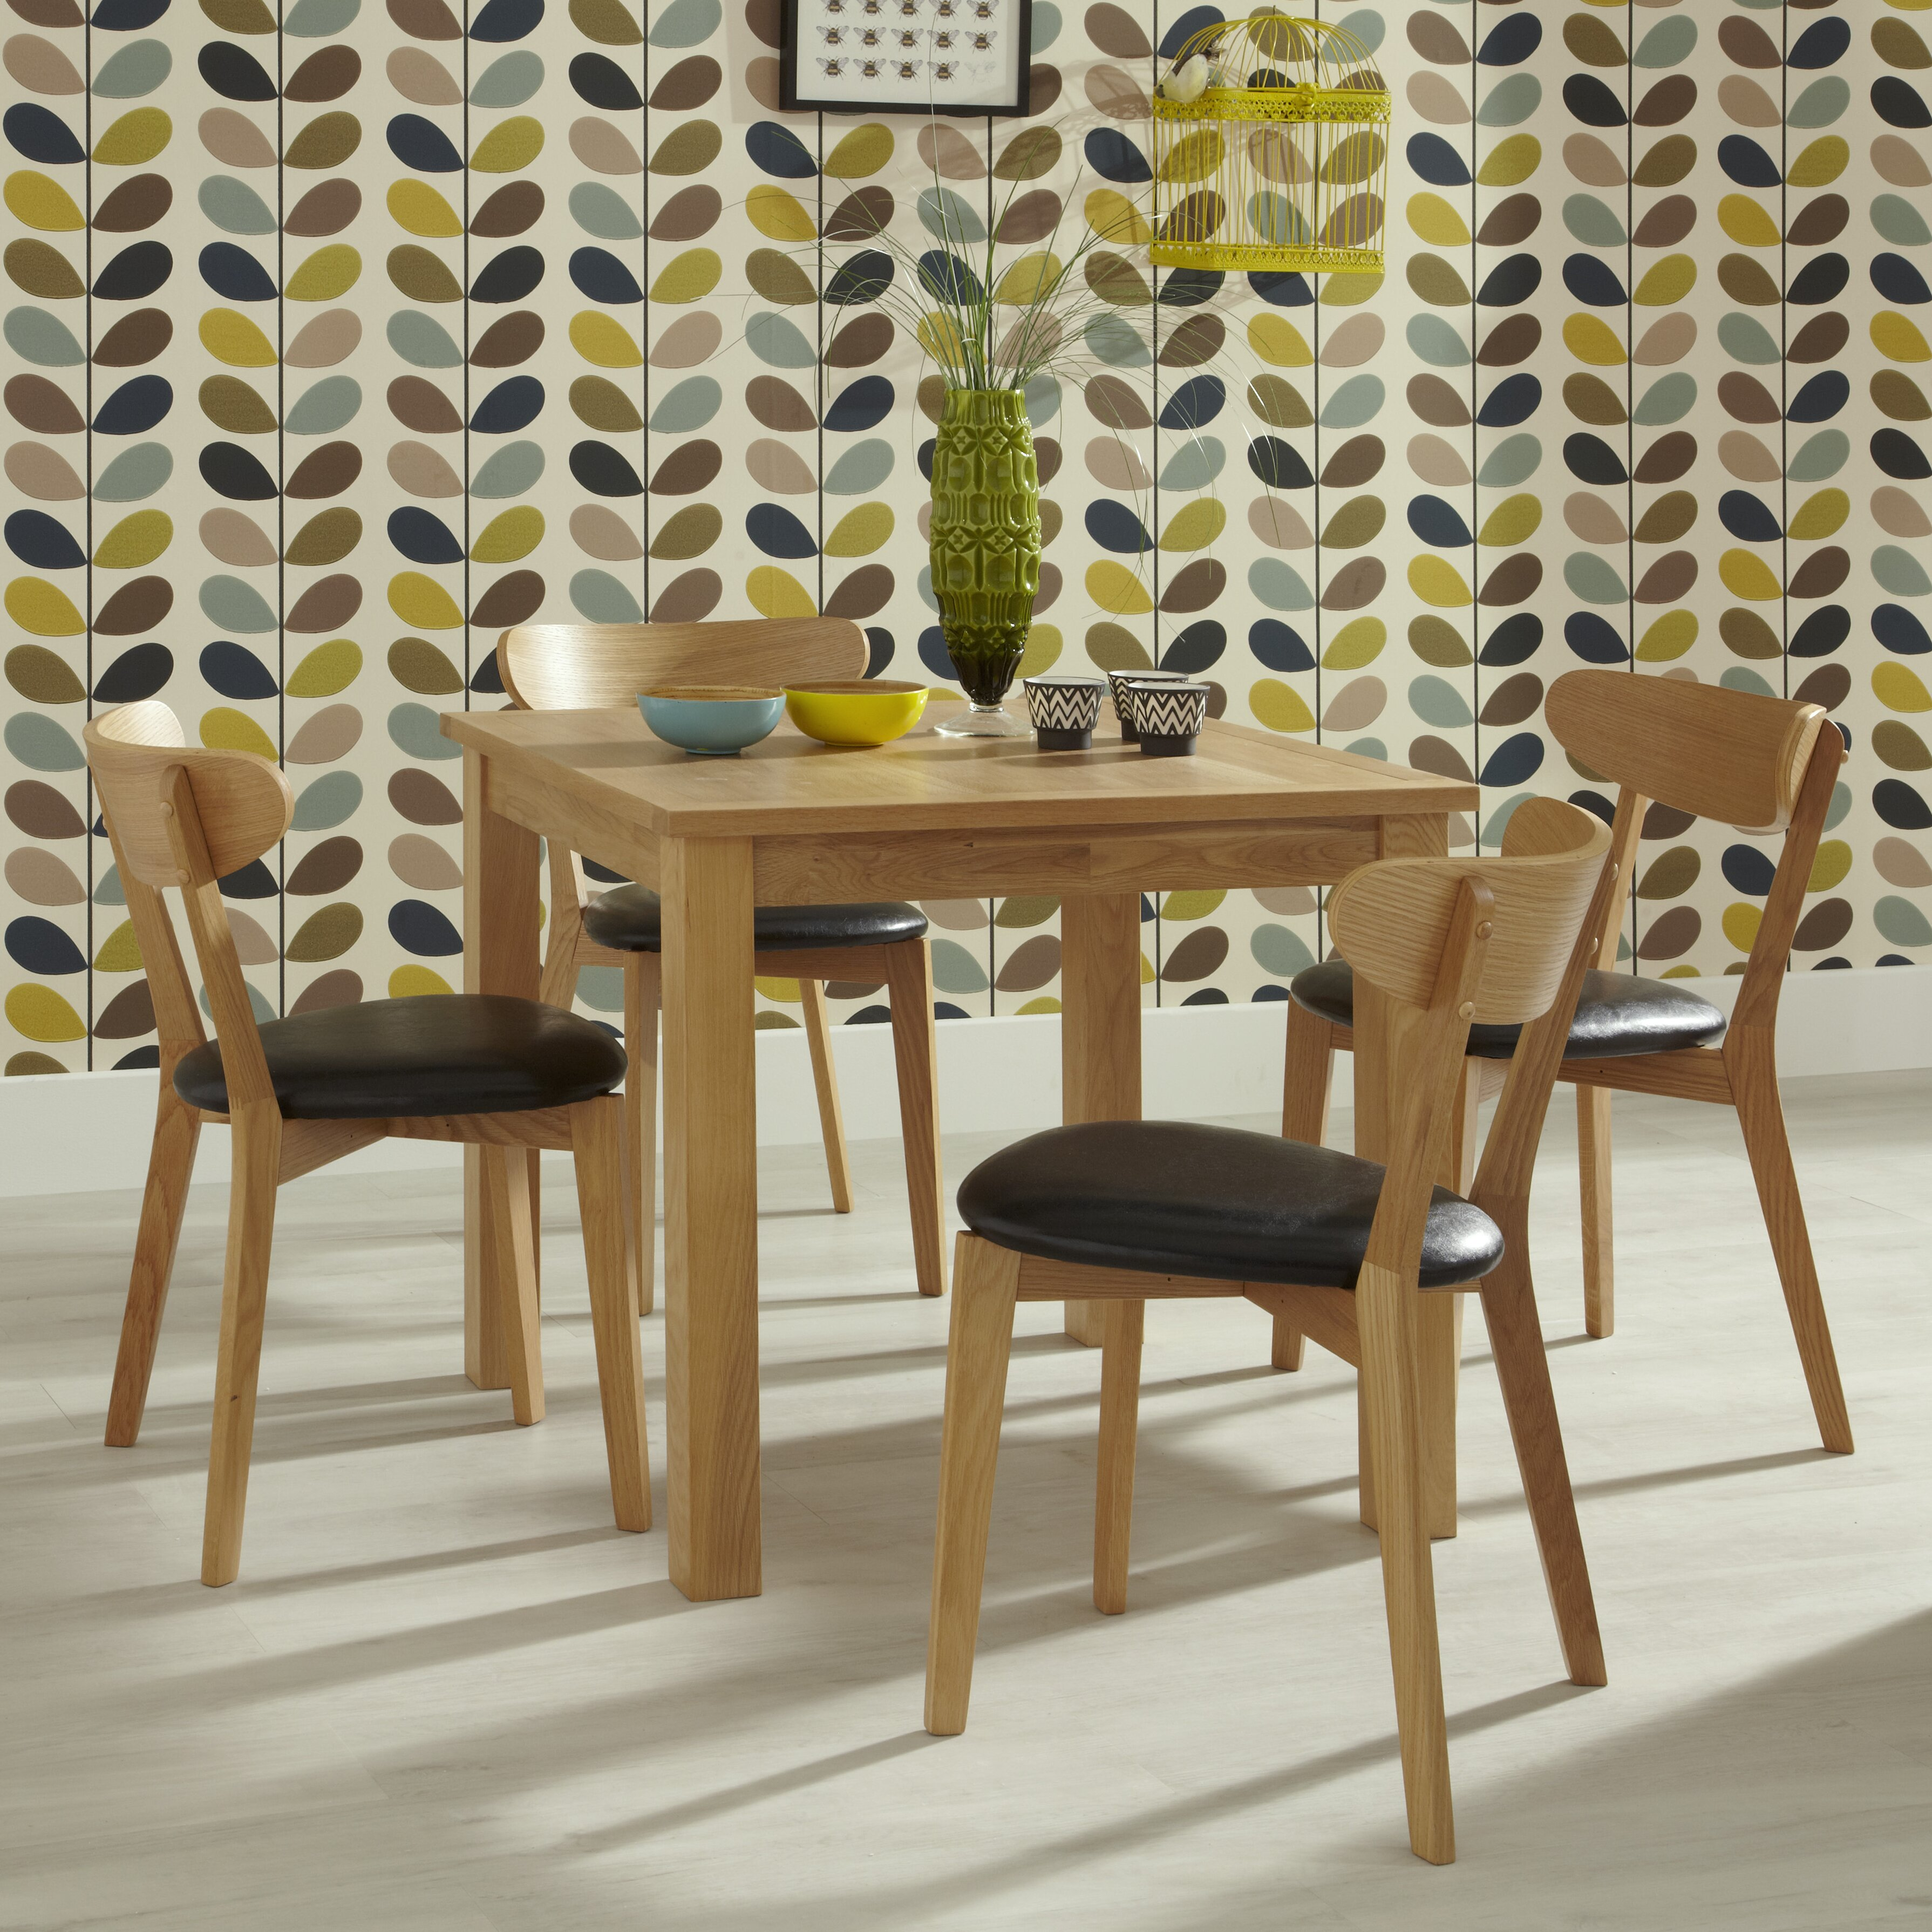 Home Haus Galga Dining Table And 4 Chairs Reviews Wayfair Uk